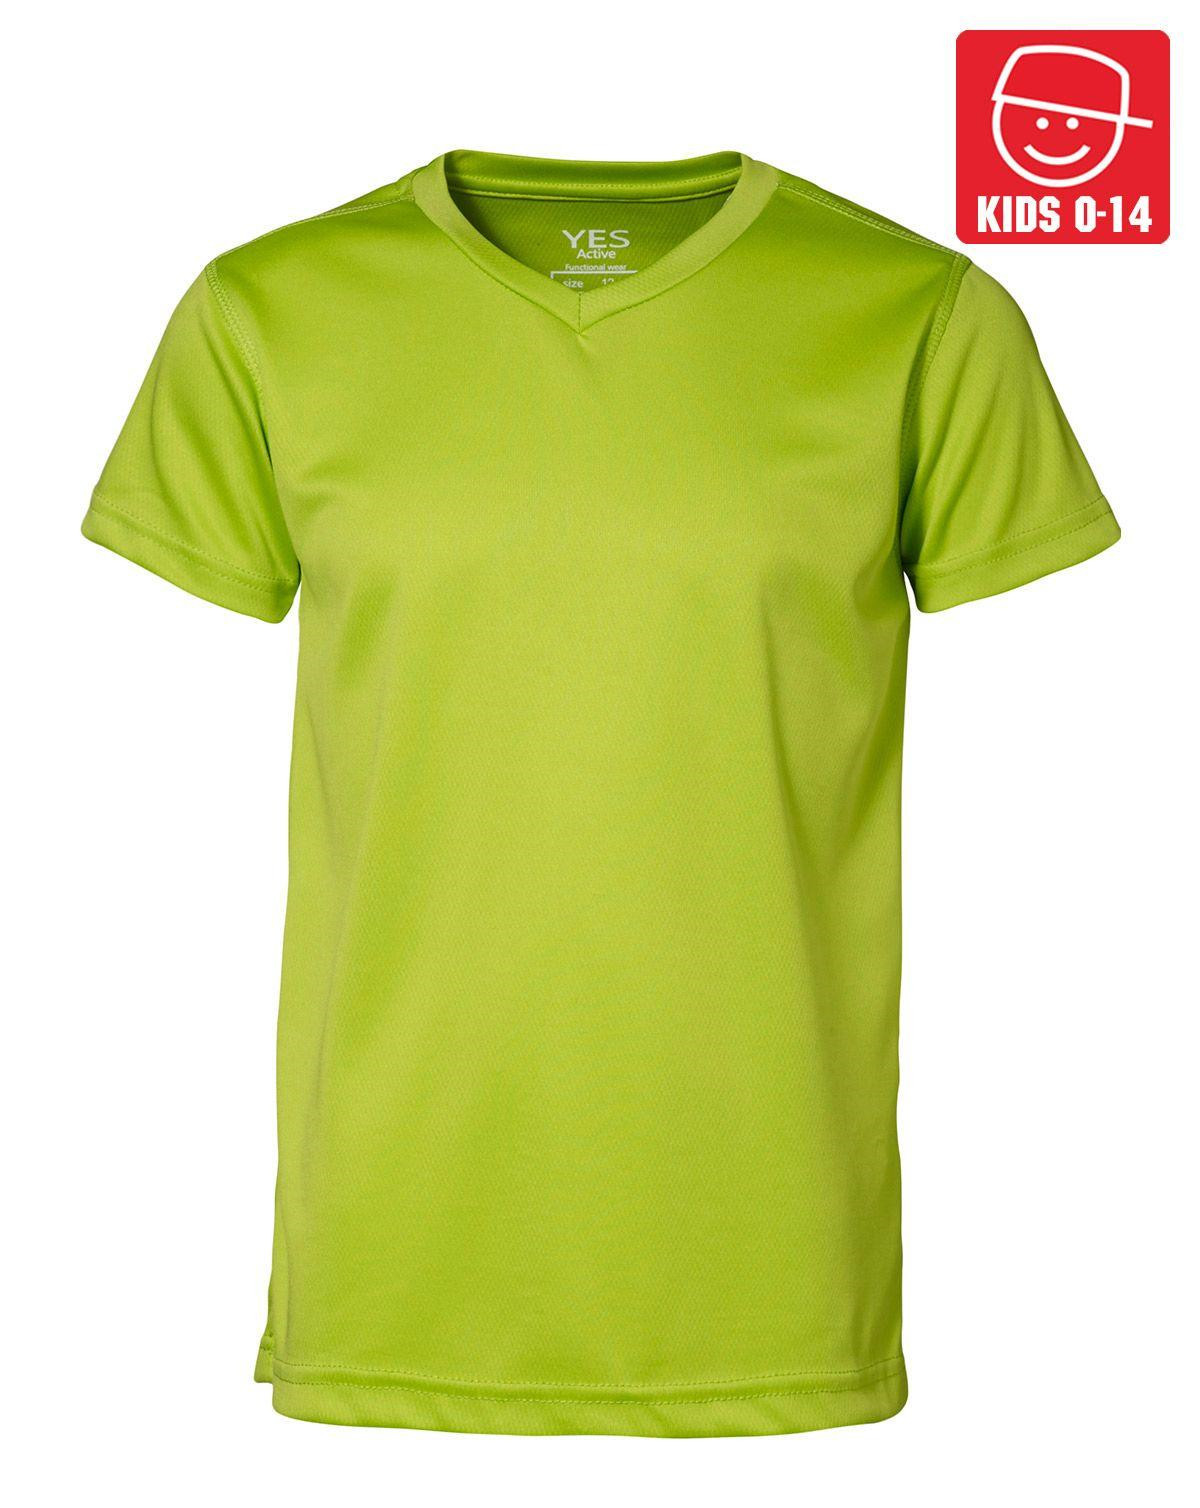 Image of   ID YES Svedtransporterende T-shirt til Børn (Lime, 128)